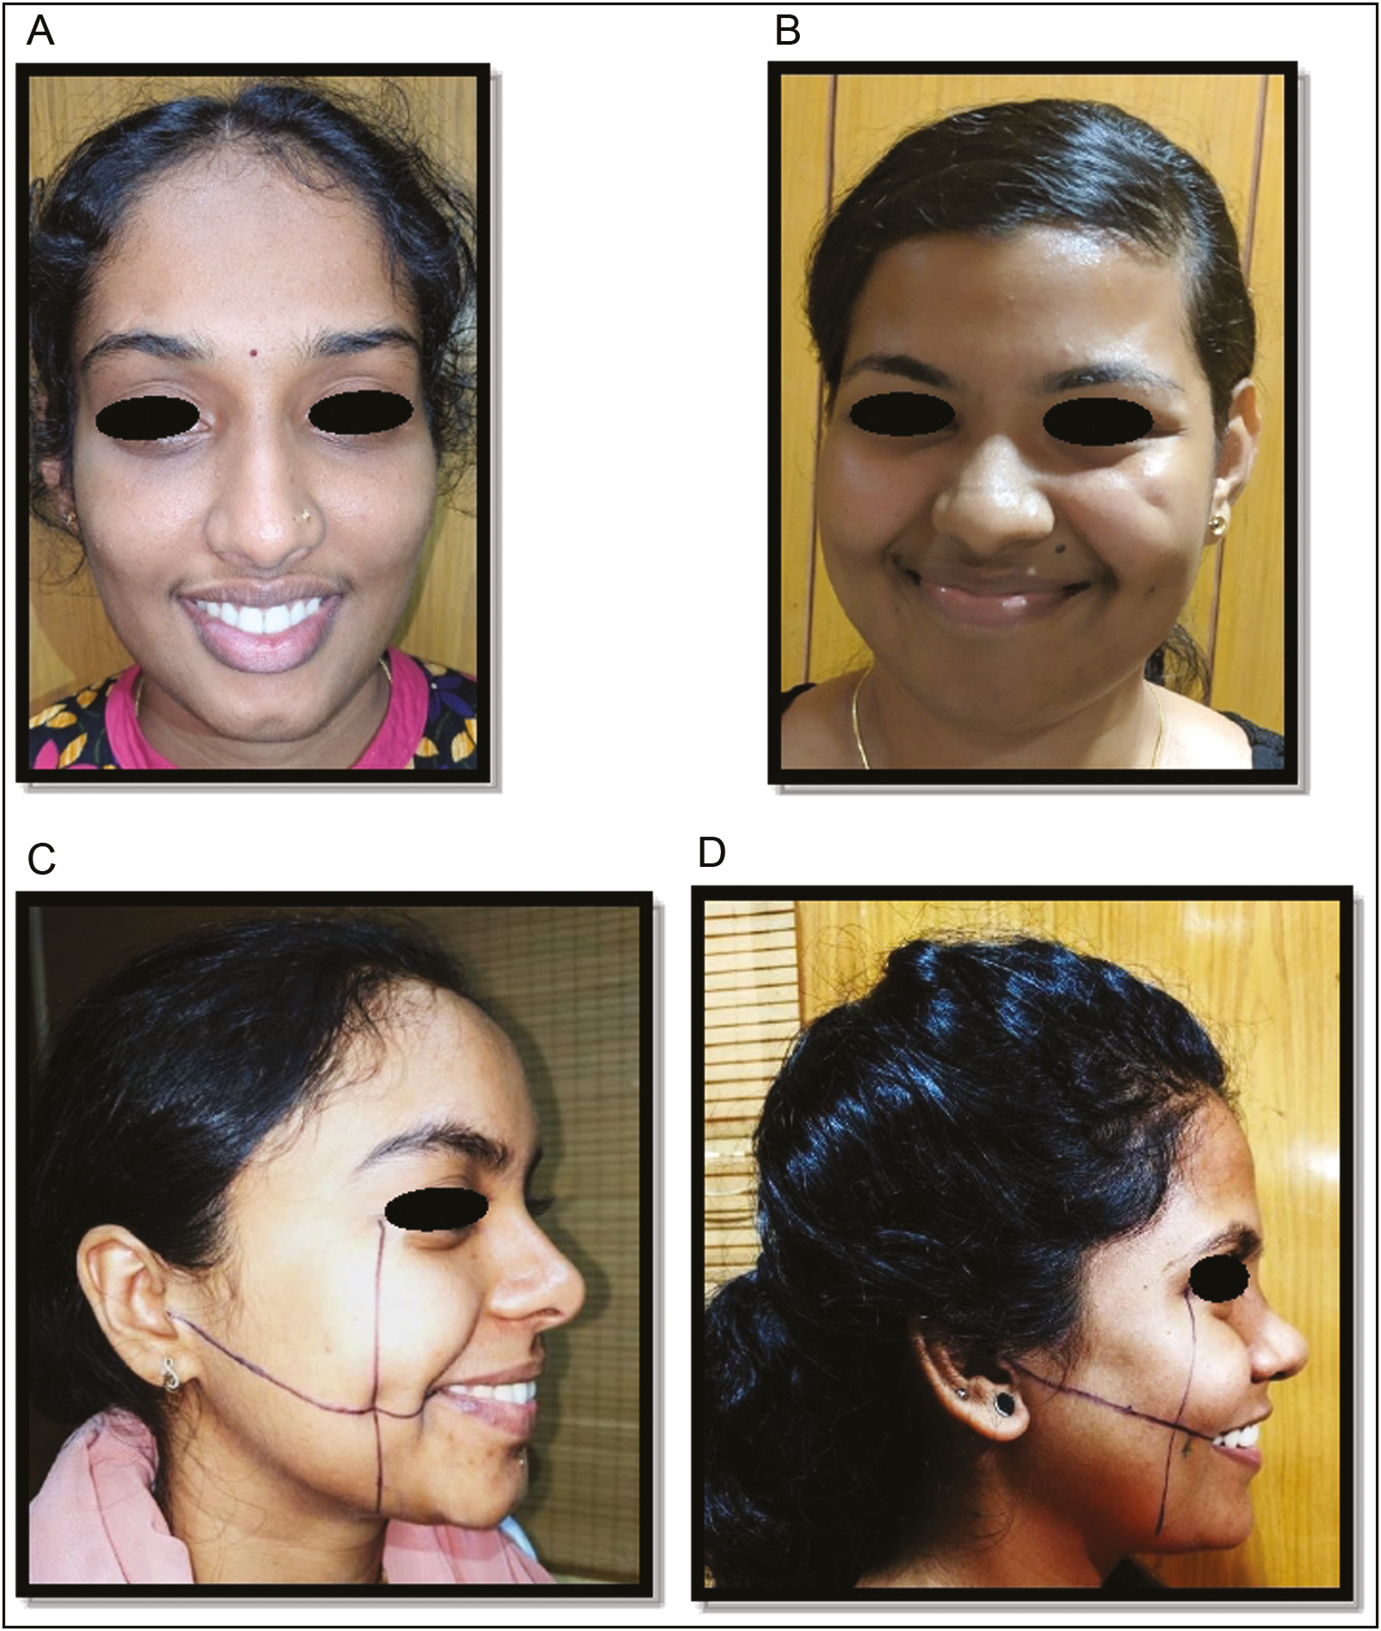 Figure 2: Variations in dimple: (A) chin dimple, (B) malar dimple, (c) dimple coinciding with KBC point, and (D) dimple not coinciding with KBC point